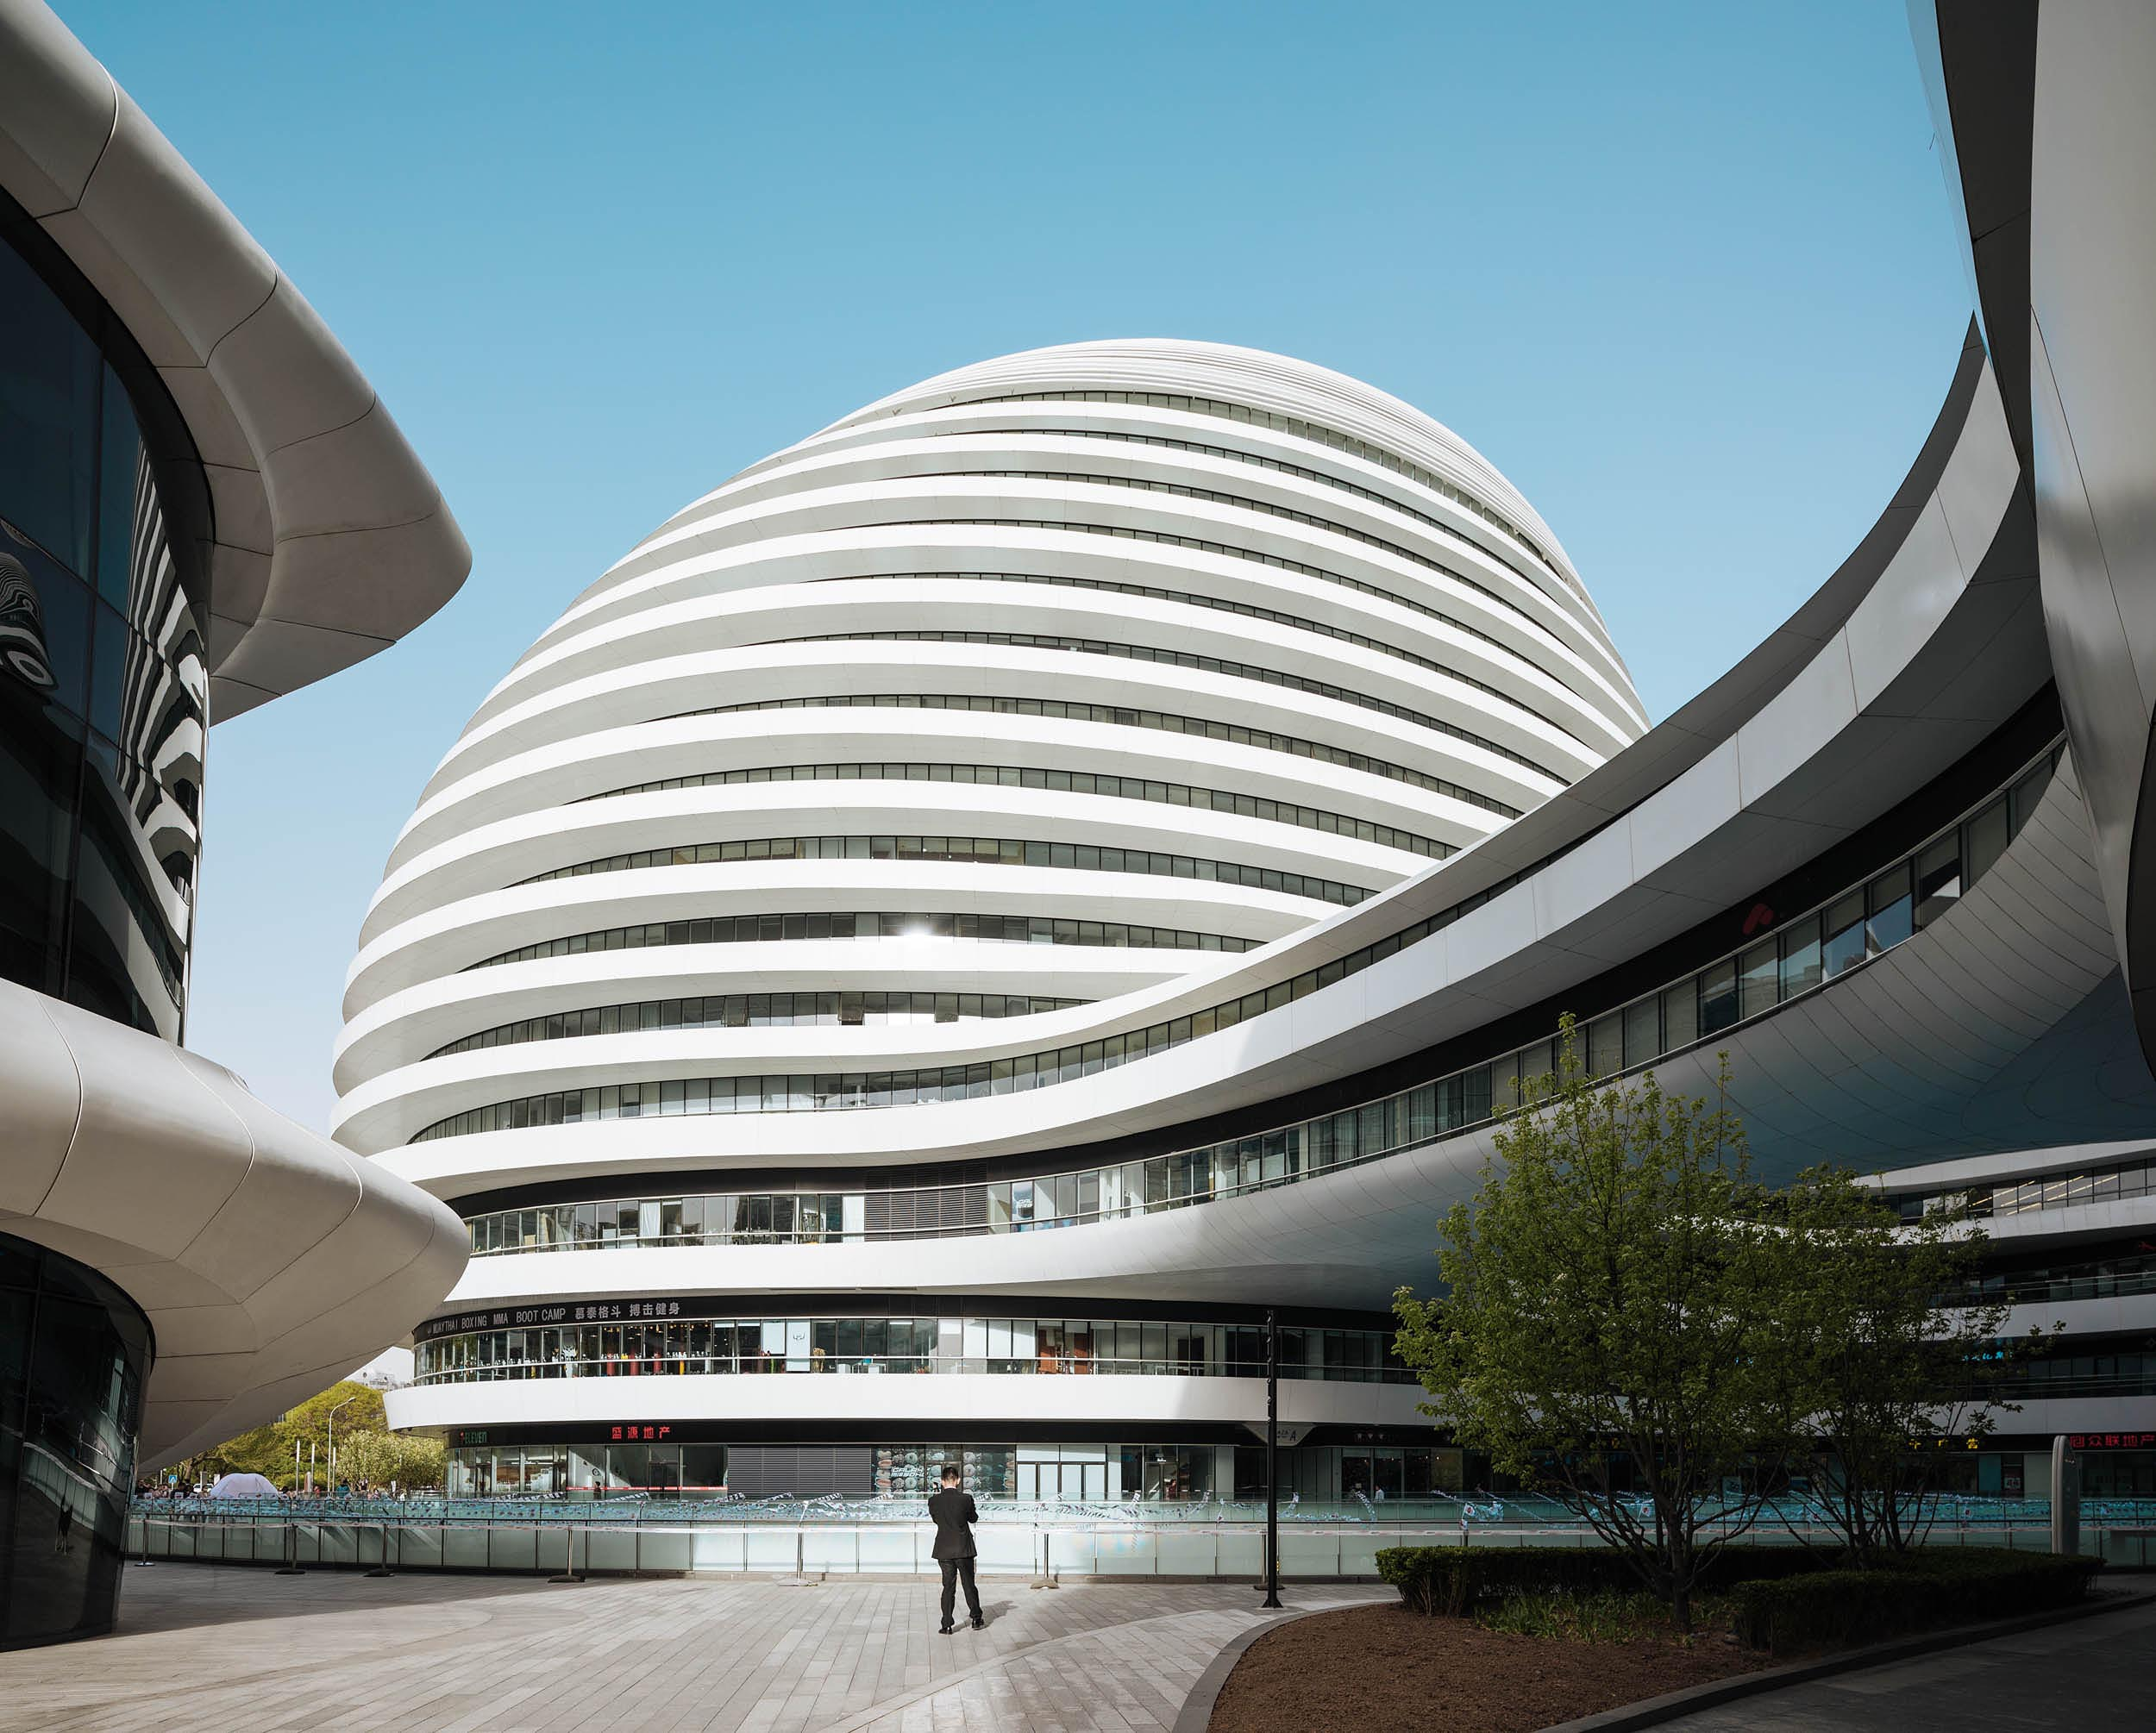 galaxy-soho-building-zaha-hadid-beijing-peking-china